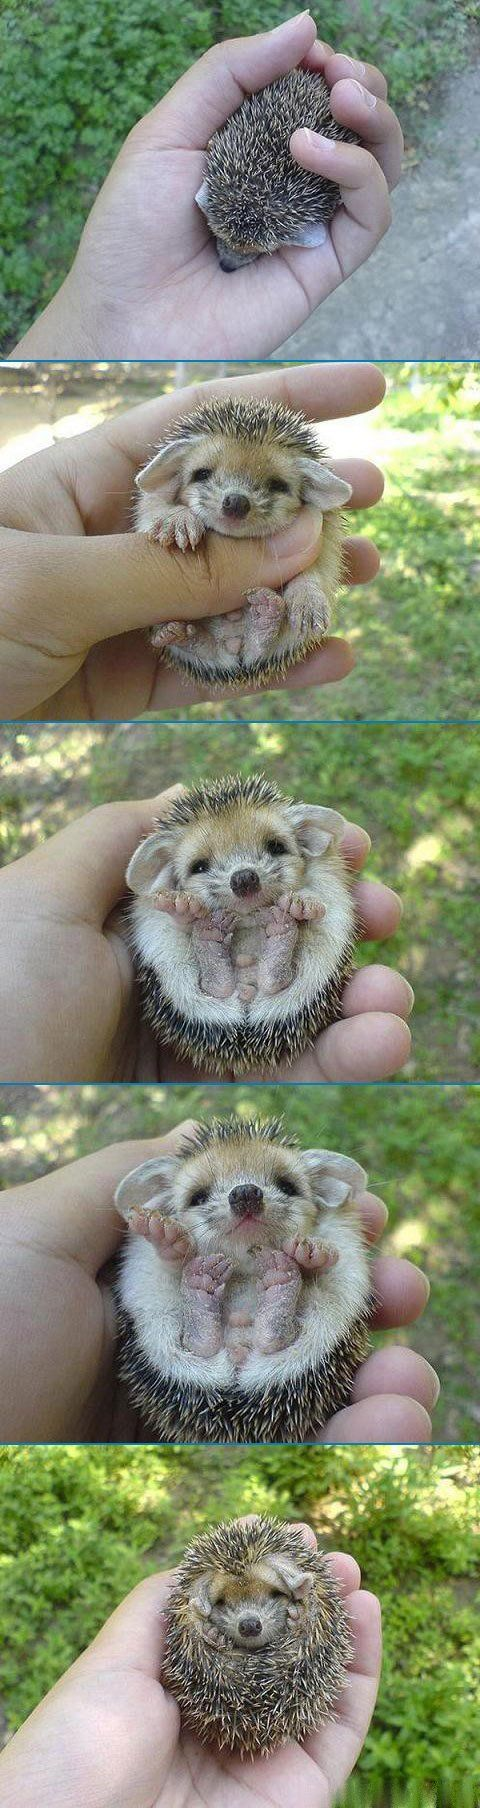 baby hedgehoggggAwww, Stuff, Baby Animal, Adorable, Baby Hedgehogs, Box, Things, Smile, Pets Hedgehogs